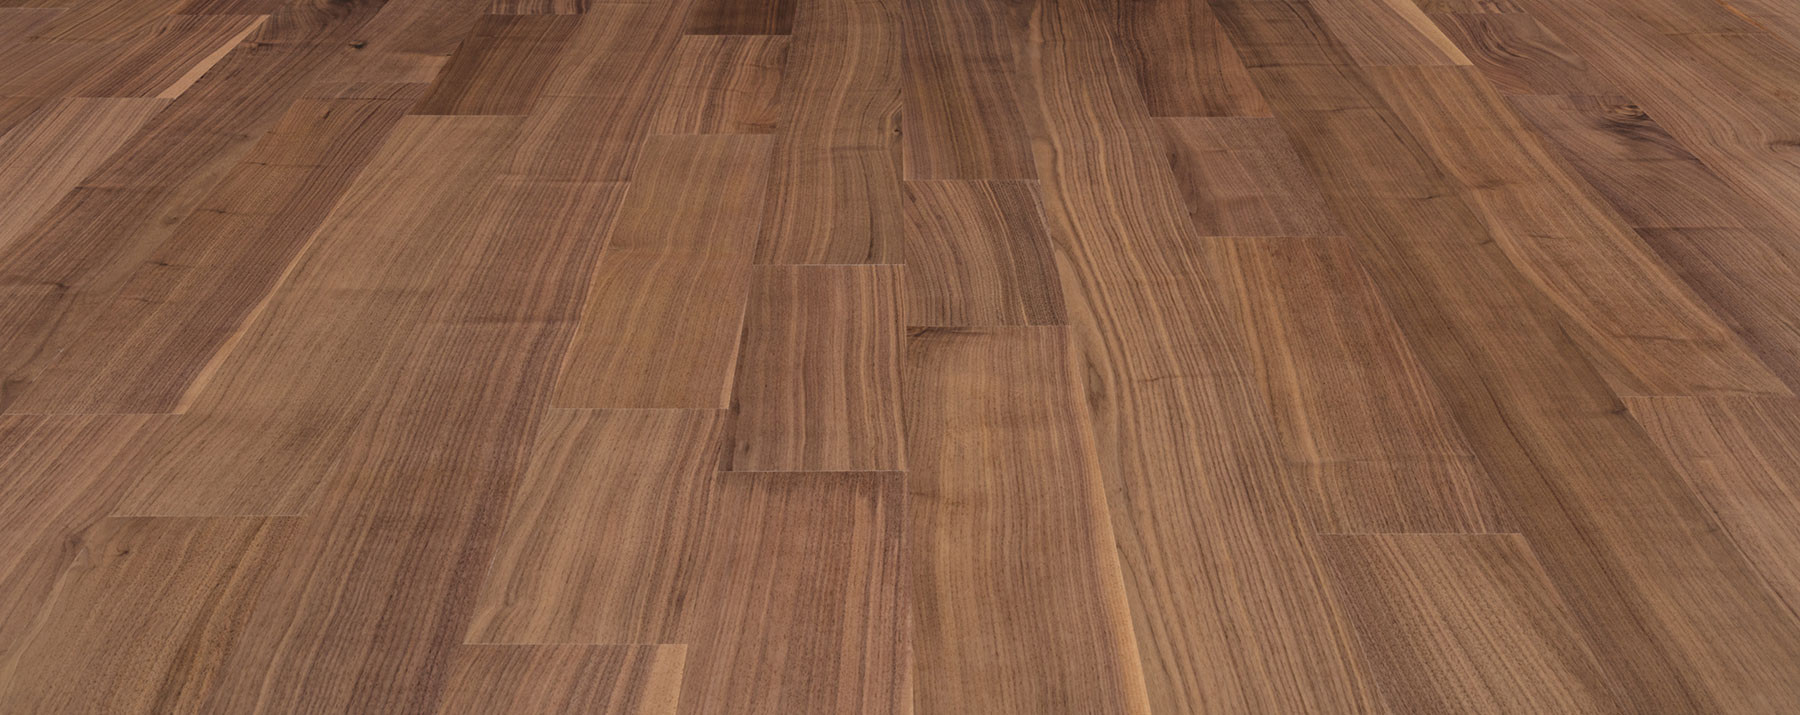 27 attractive 5 16 Engineered Hardwood Flooring 2021 free download 5 16 engineered hardwood flooring of american quartered walnut 5e280b3 etx surfaces with american quartered walnut 5e280b3 american quartered walnut engineered wood flooring